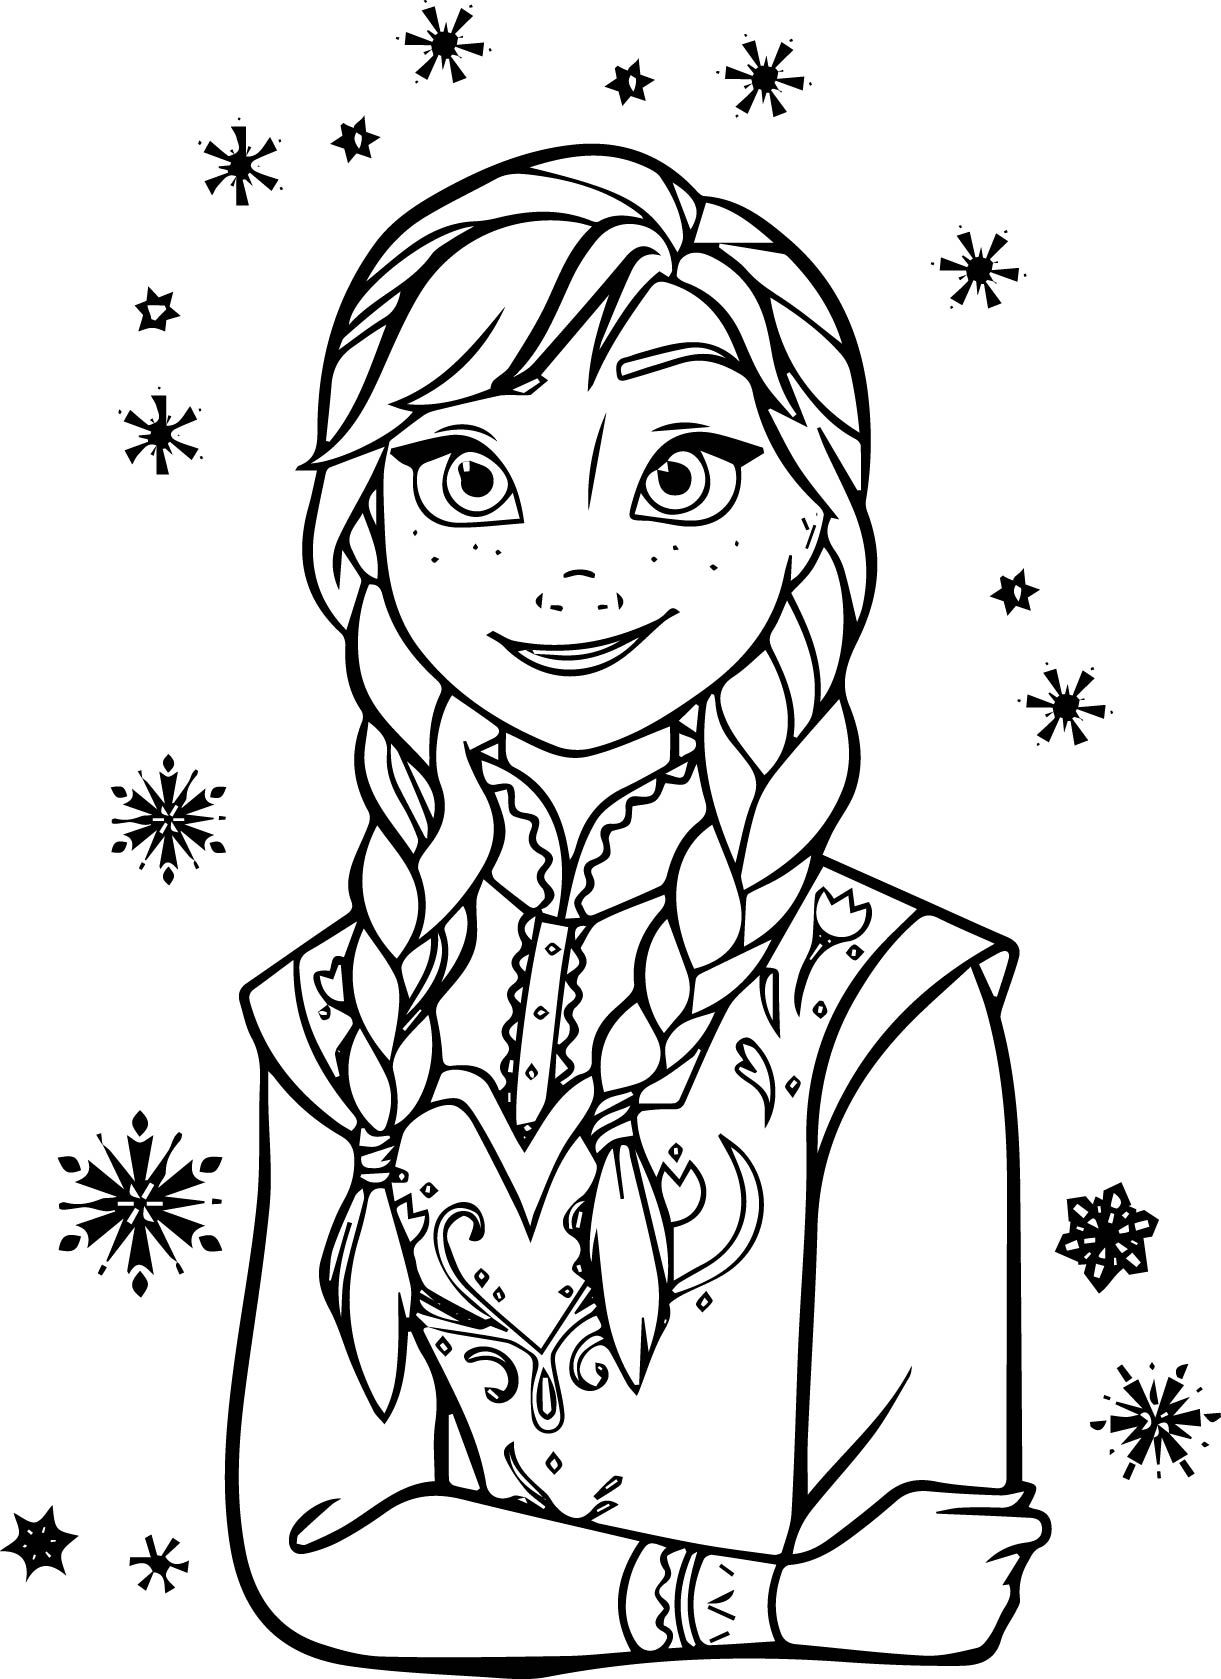 anna and elsa frozen coloring pages frozen elsa and anna coloring pages free printable and frozen elsa pages anna coloring